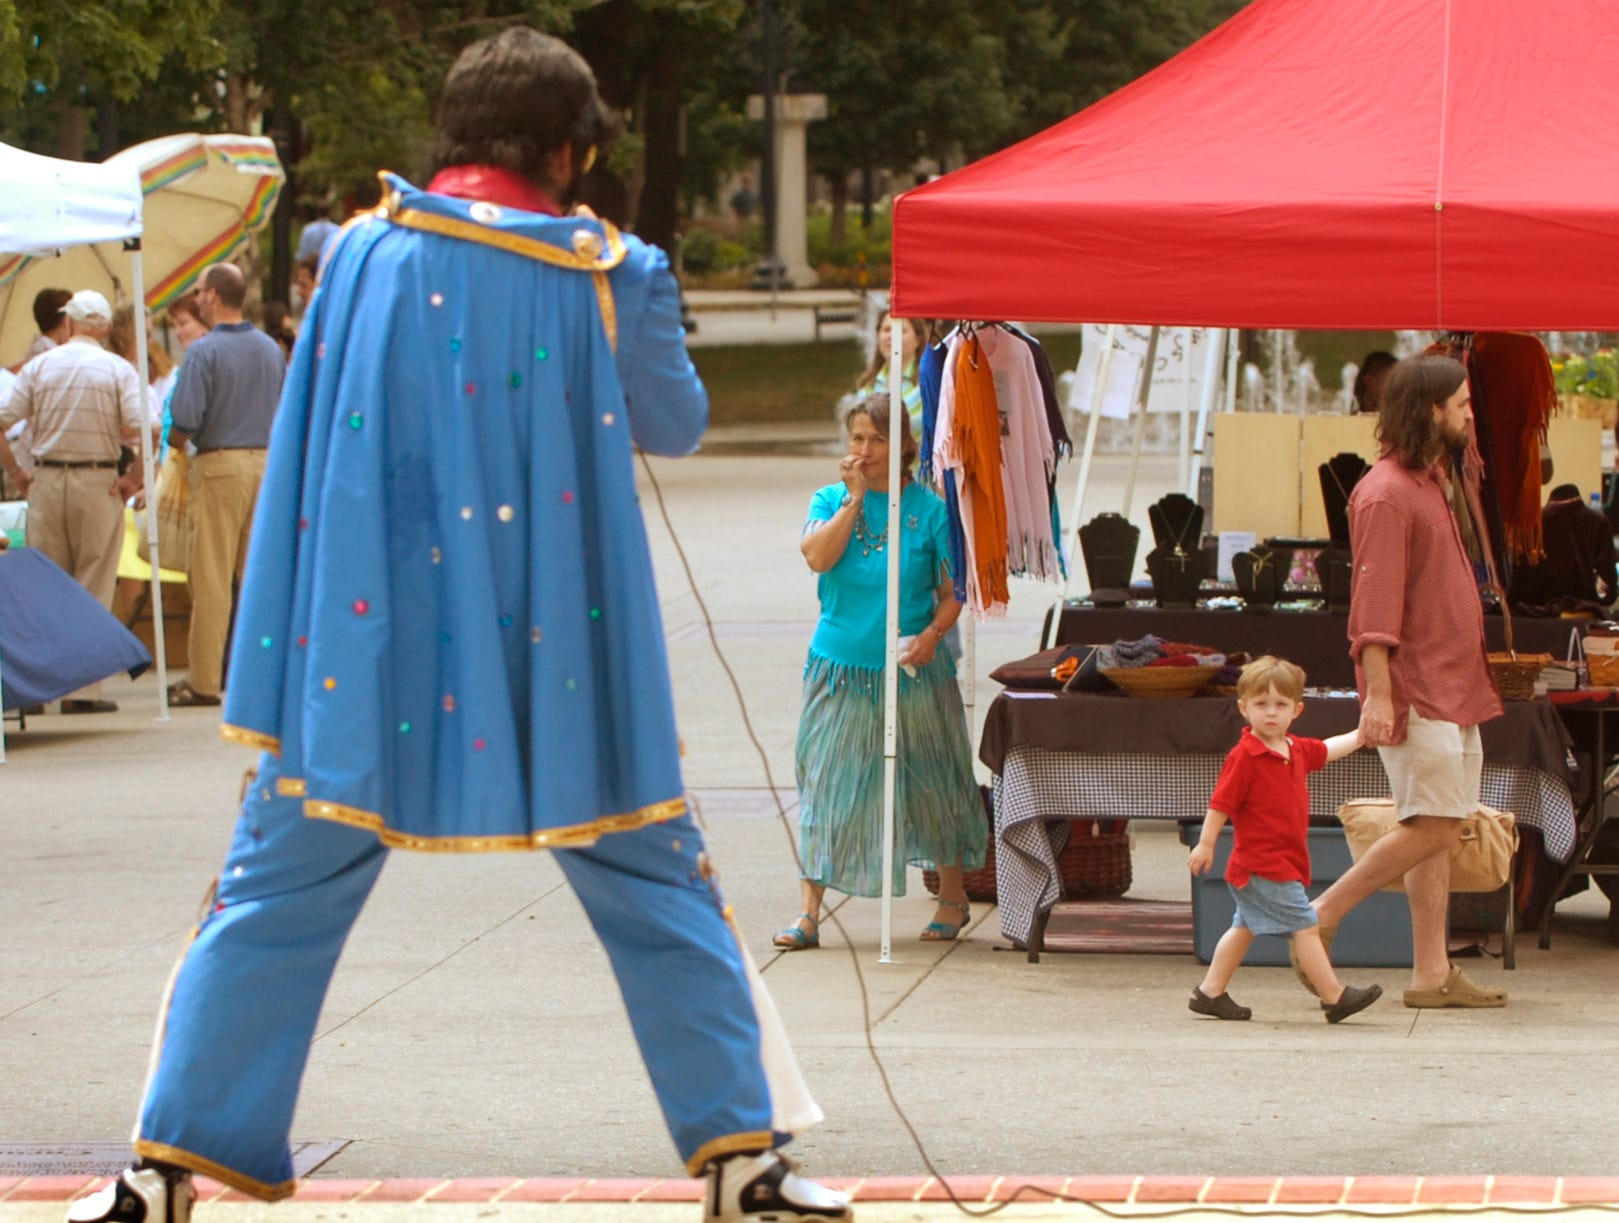 While walking with his father Darrien Thomson (cq), right, Hayden Brackeen, 2, looks on as Elvis impersonator Jeff Martin performs Wednesday at the Market Square Farmers' Market. Martin has become a regular to the market.  6/6/2007